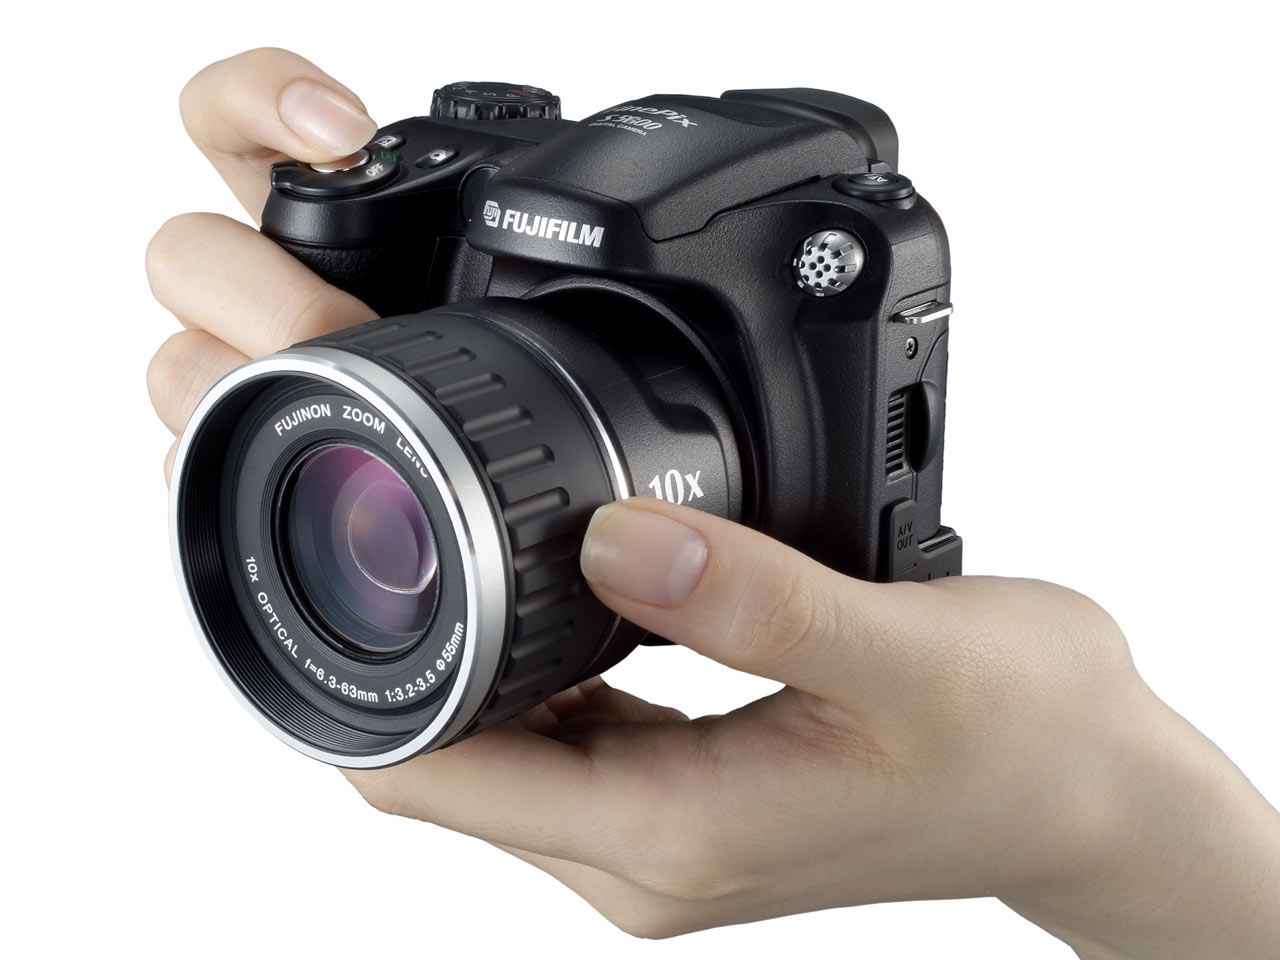 fujifilm finepix s5200 s5600 zoom digital photography review rh dpreview com finepix s5200 user manual finepix s5200 user manual